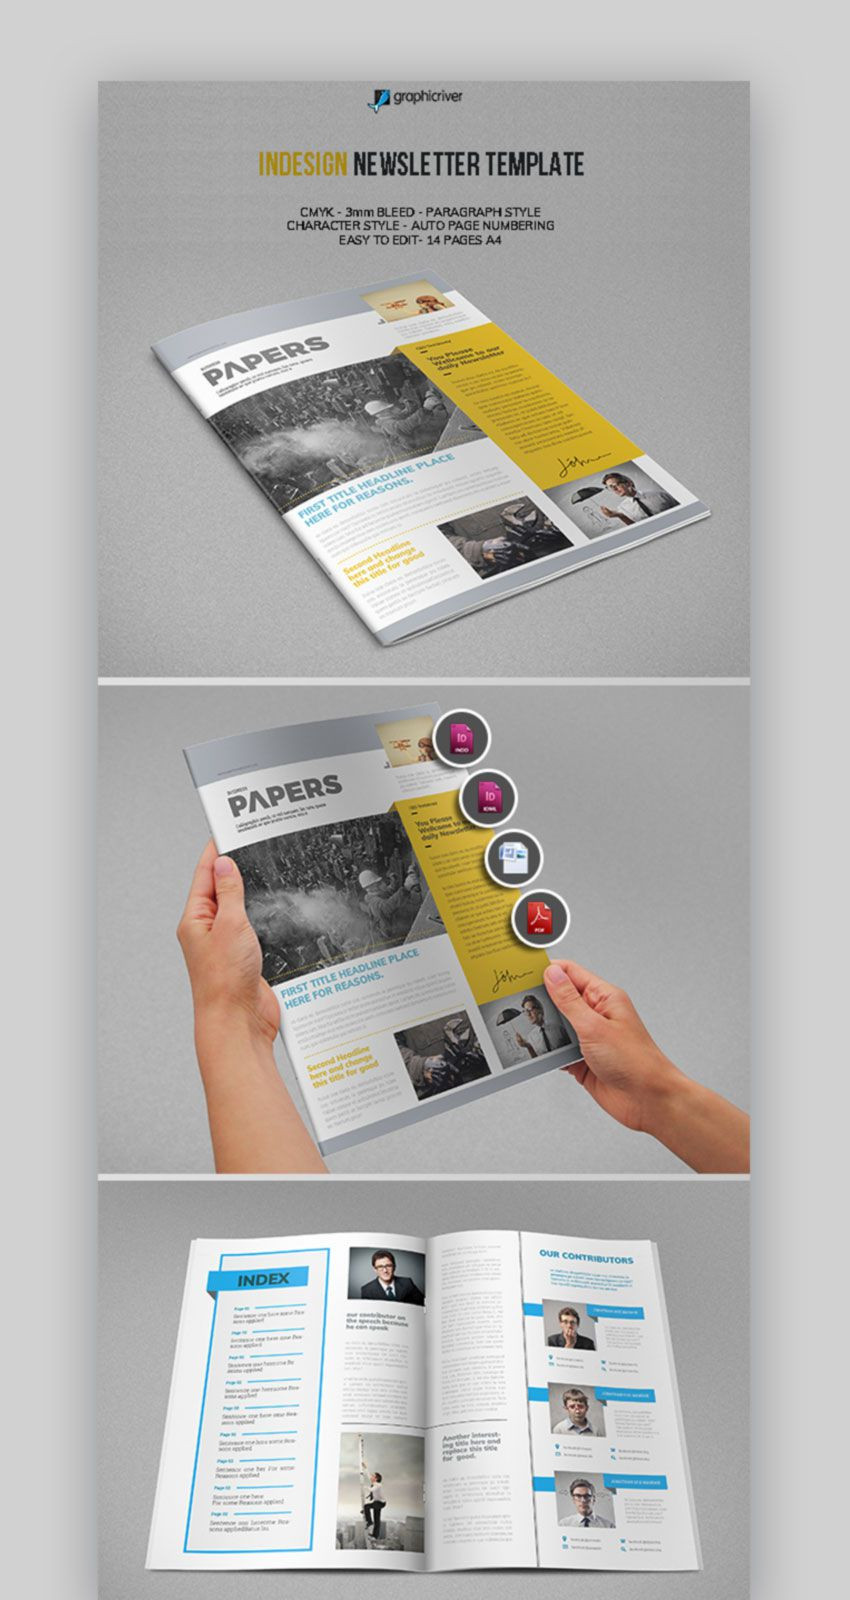 005 Fascinating Microsoft Word Newsletter Template Highest Quality  M 2007 Free Download For TeacherFull